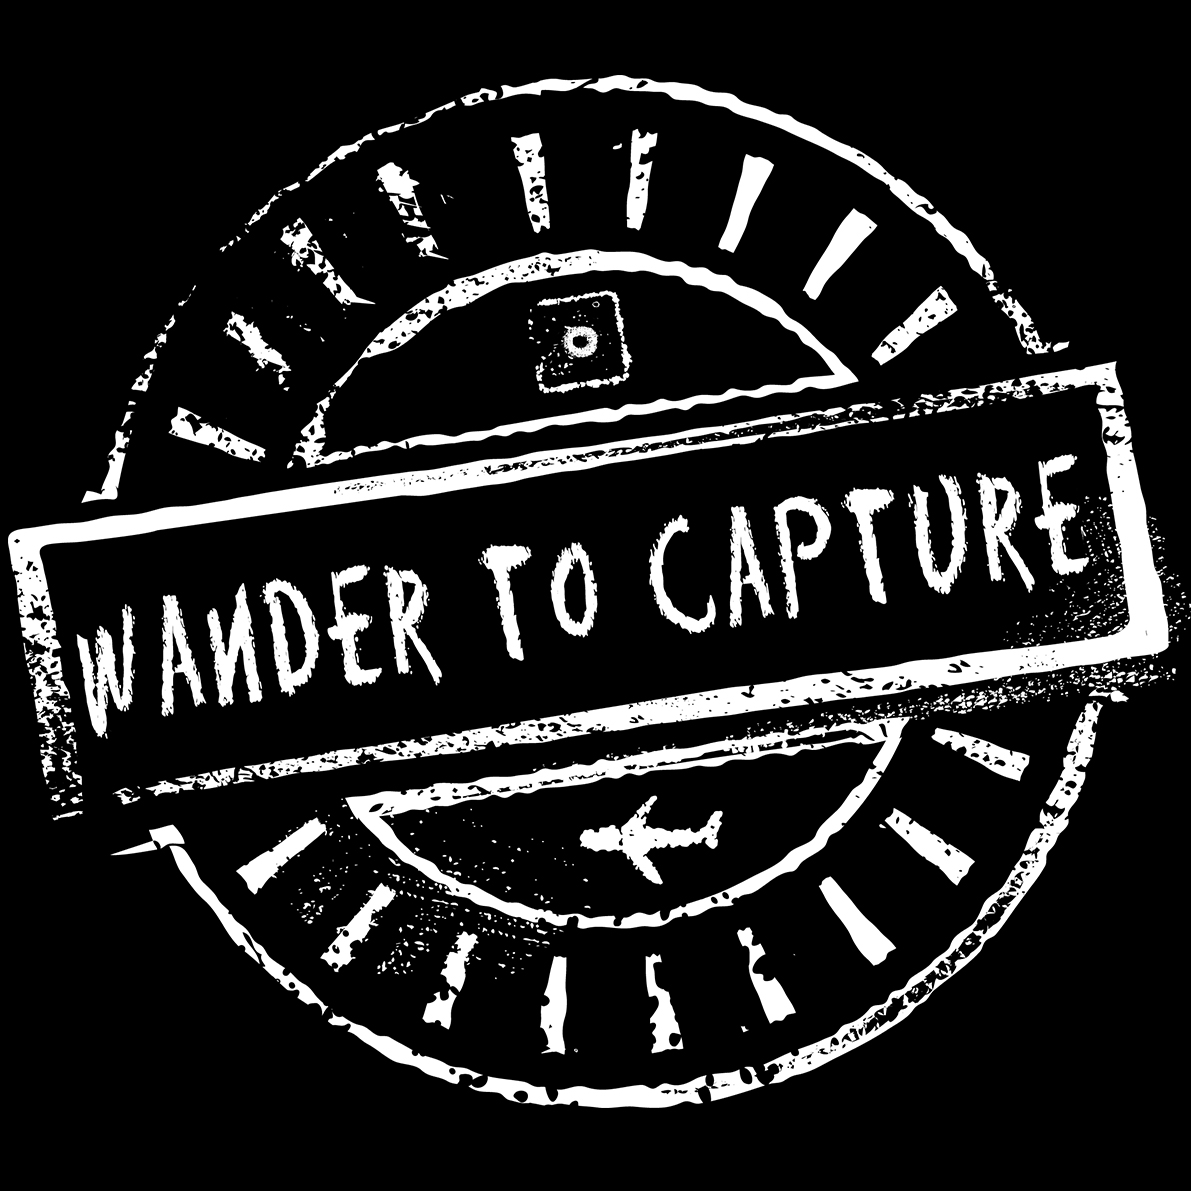 Wander to Capture